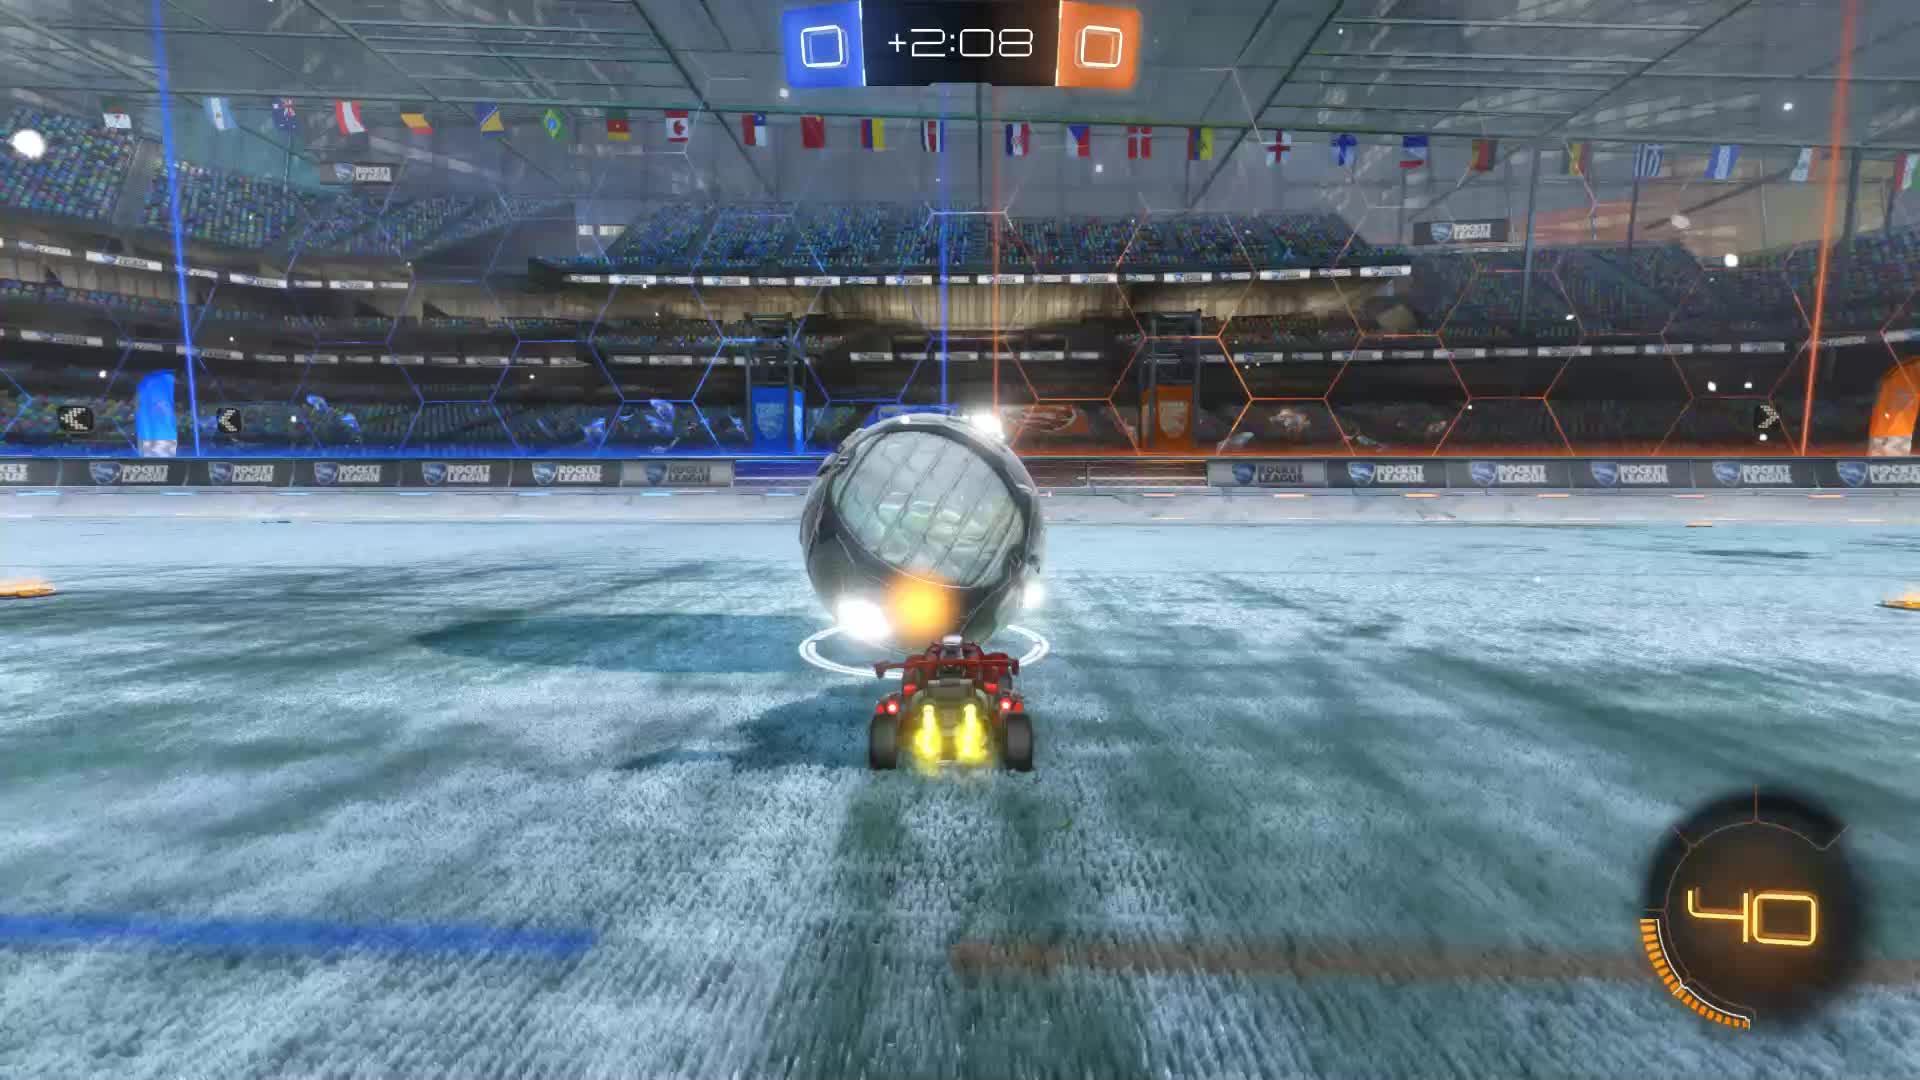 Gif Your Game, GifYourGame, Goal, Rocket League, RocketLeague, aplanna, Goal 1: aplanna GIFs